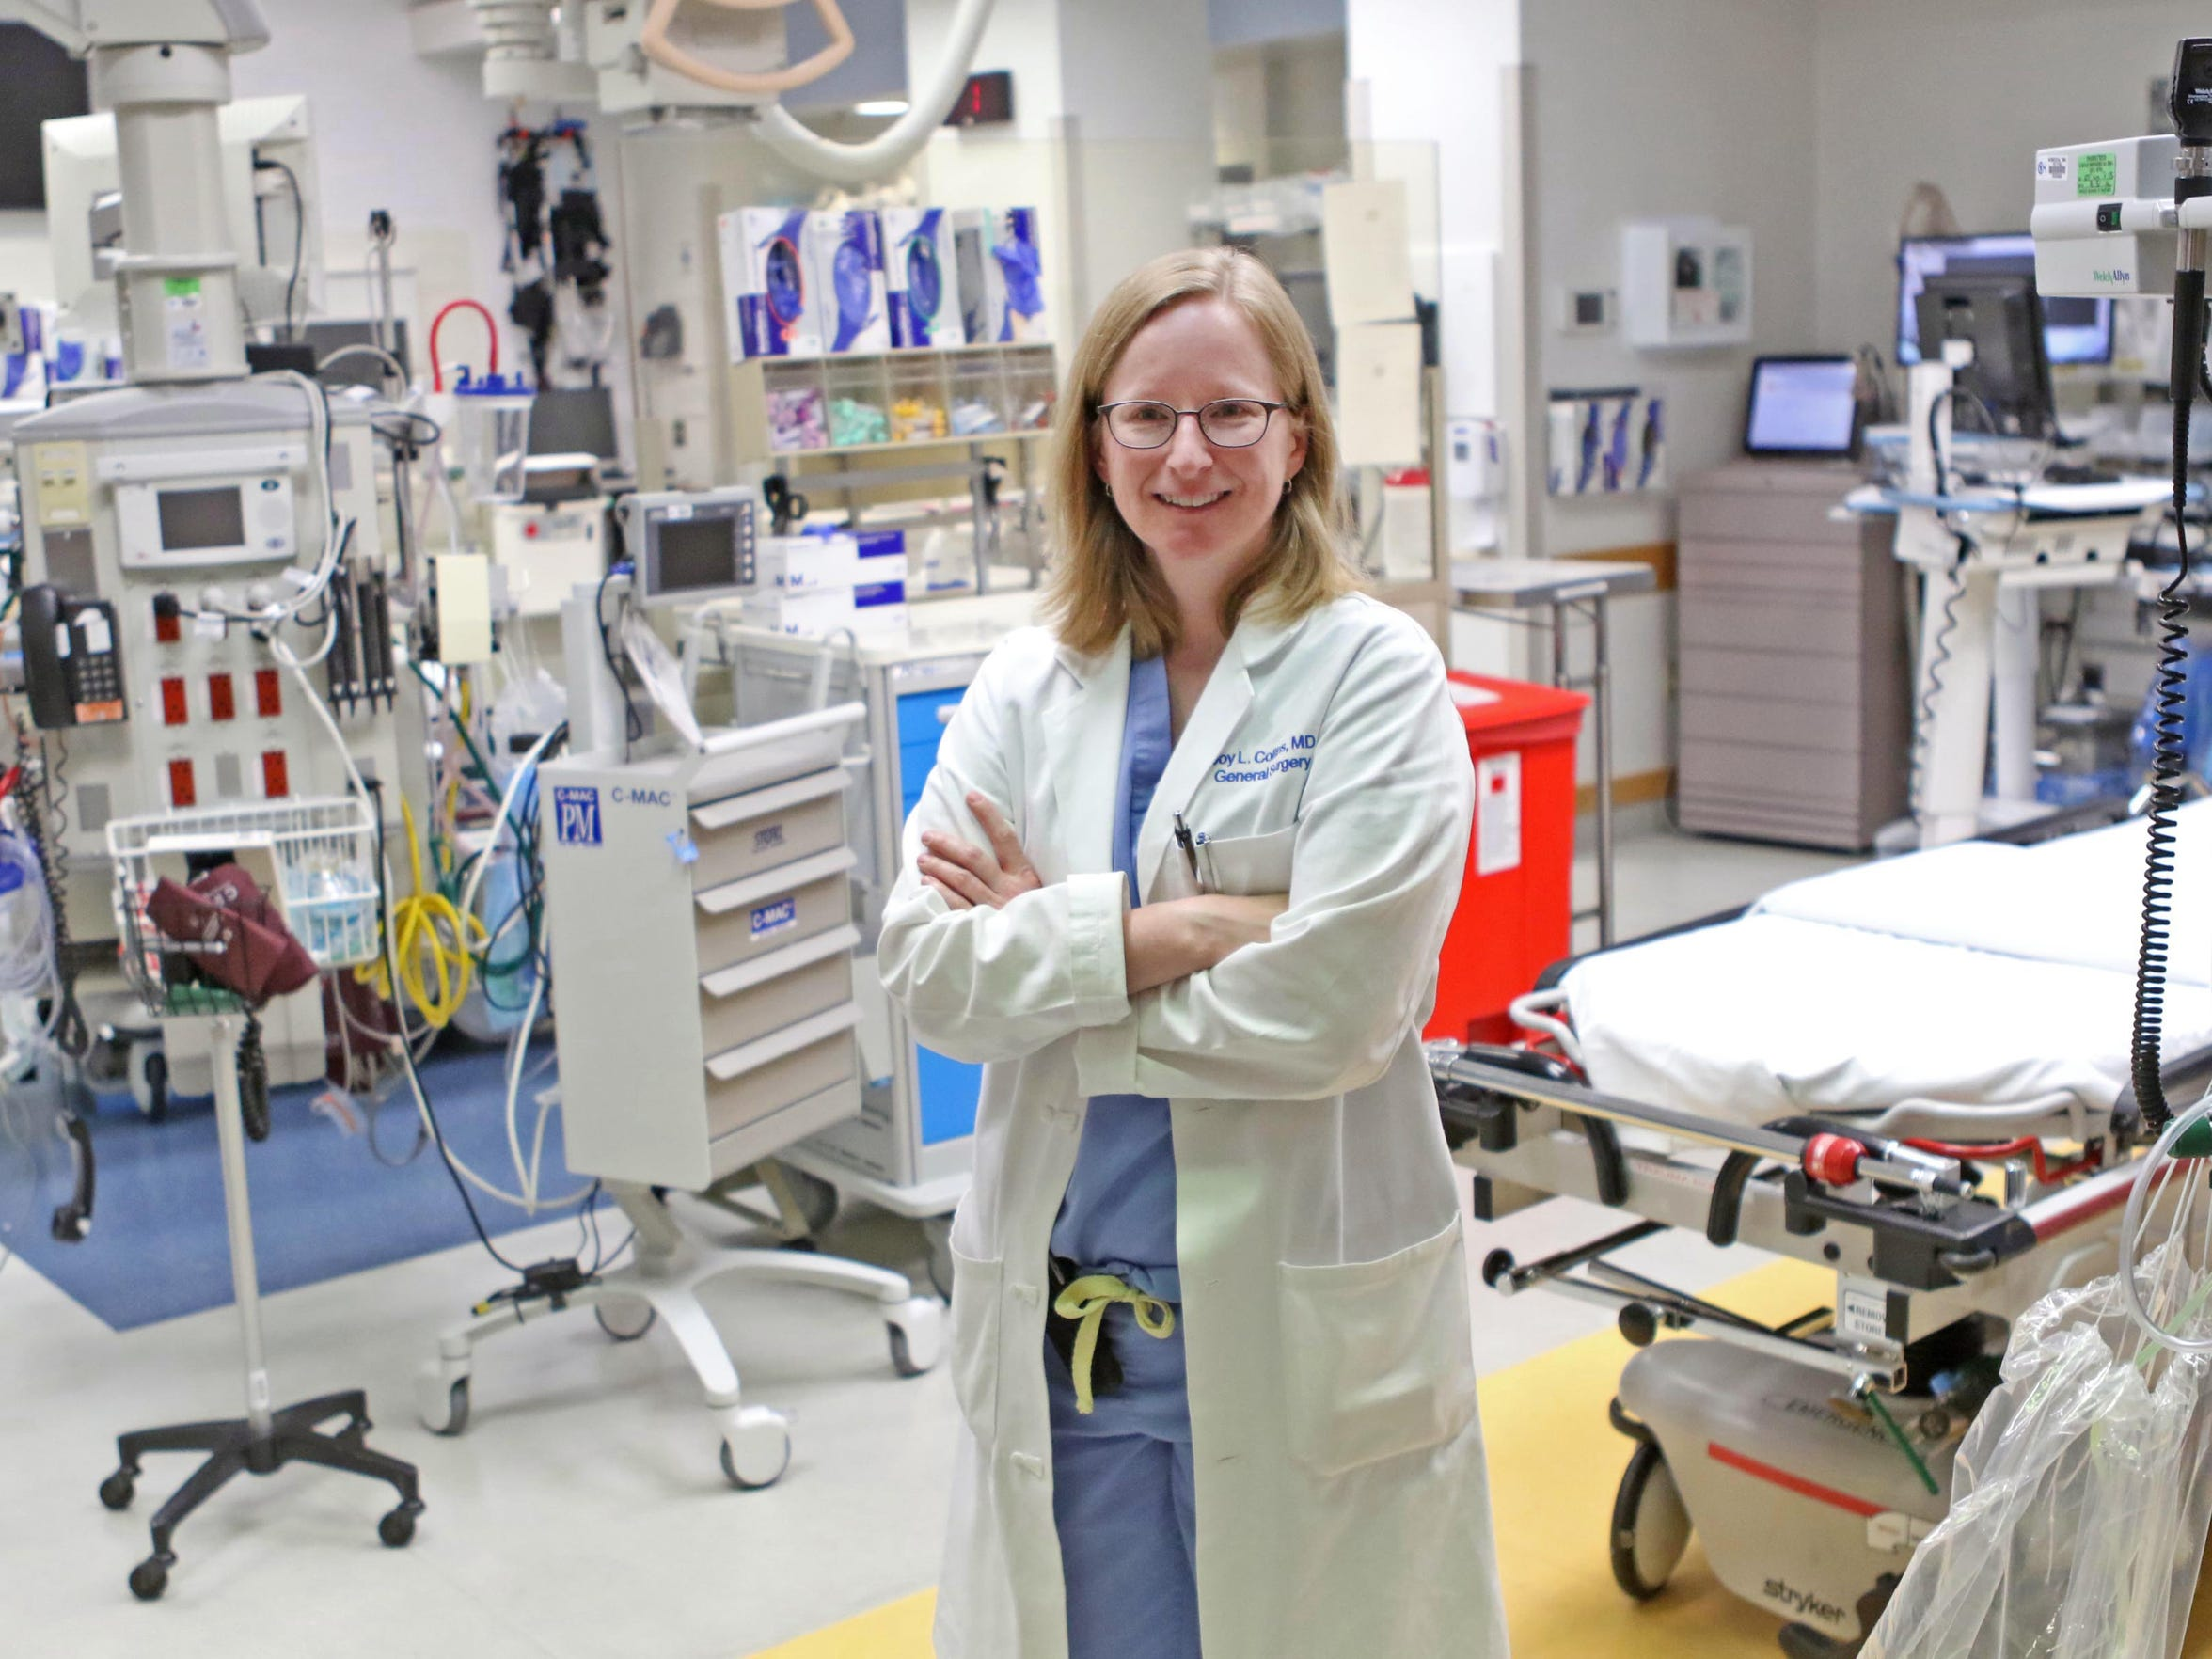 Dr. Joy Collins, a trauma surgeon at CHOP, stands in